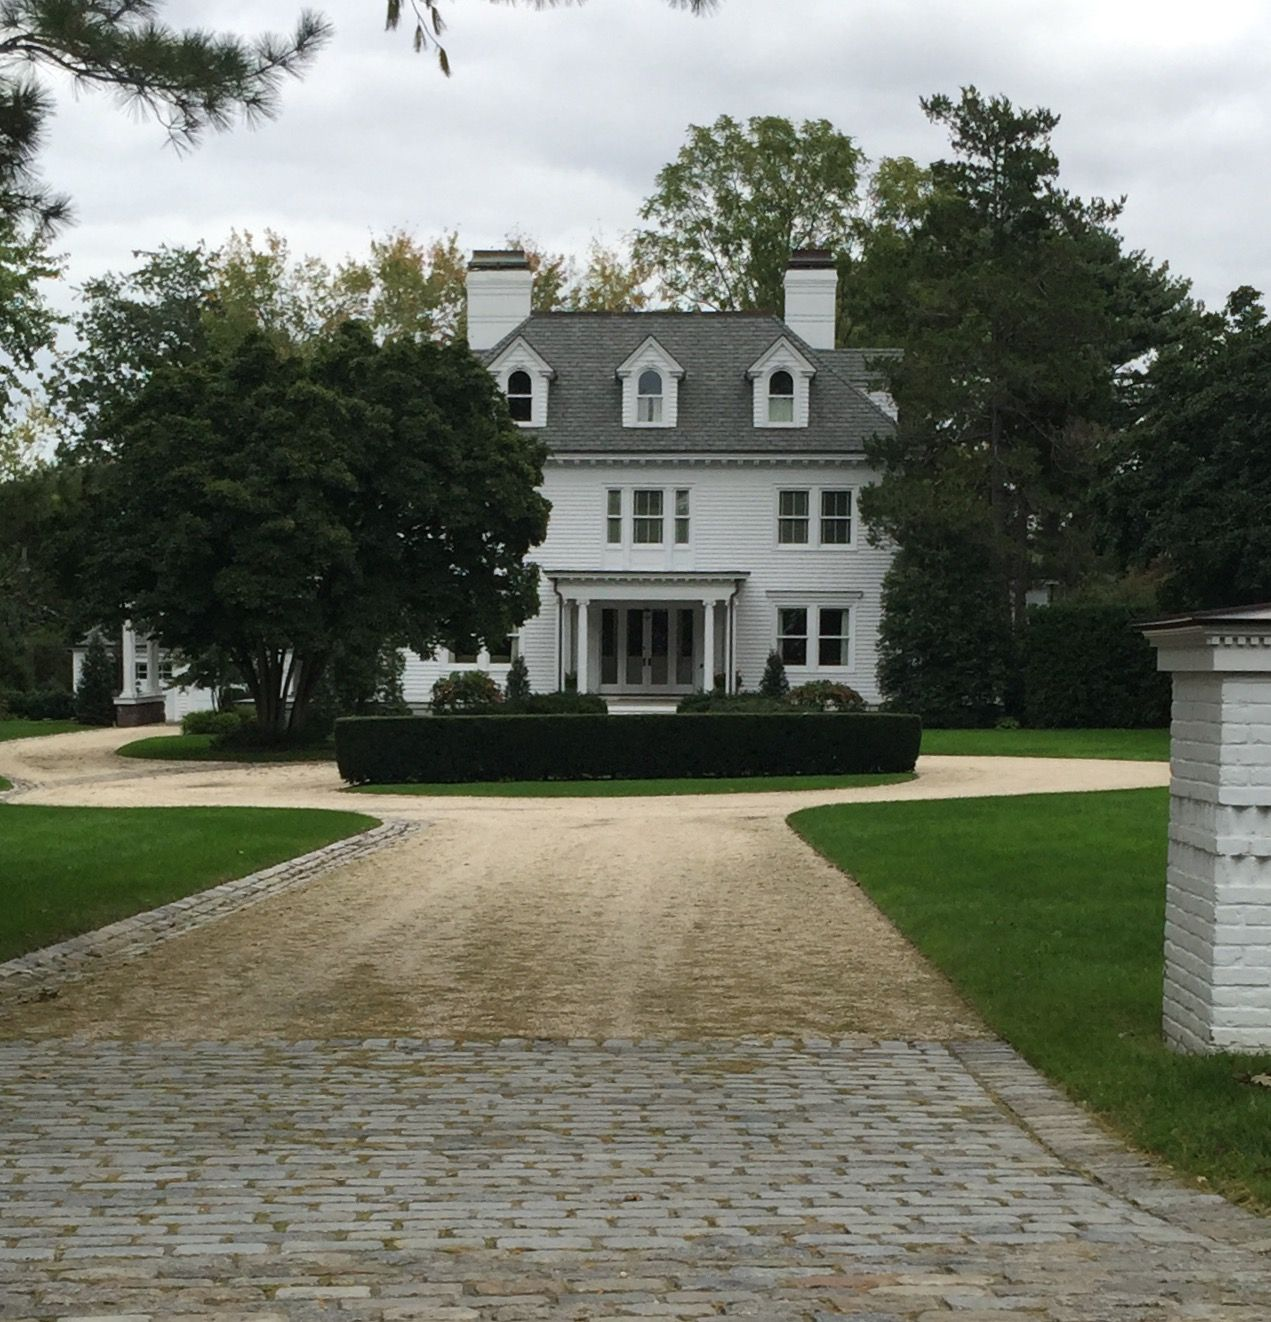 Dream home in Northport, NY.